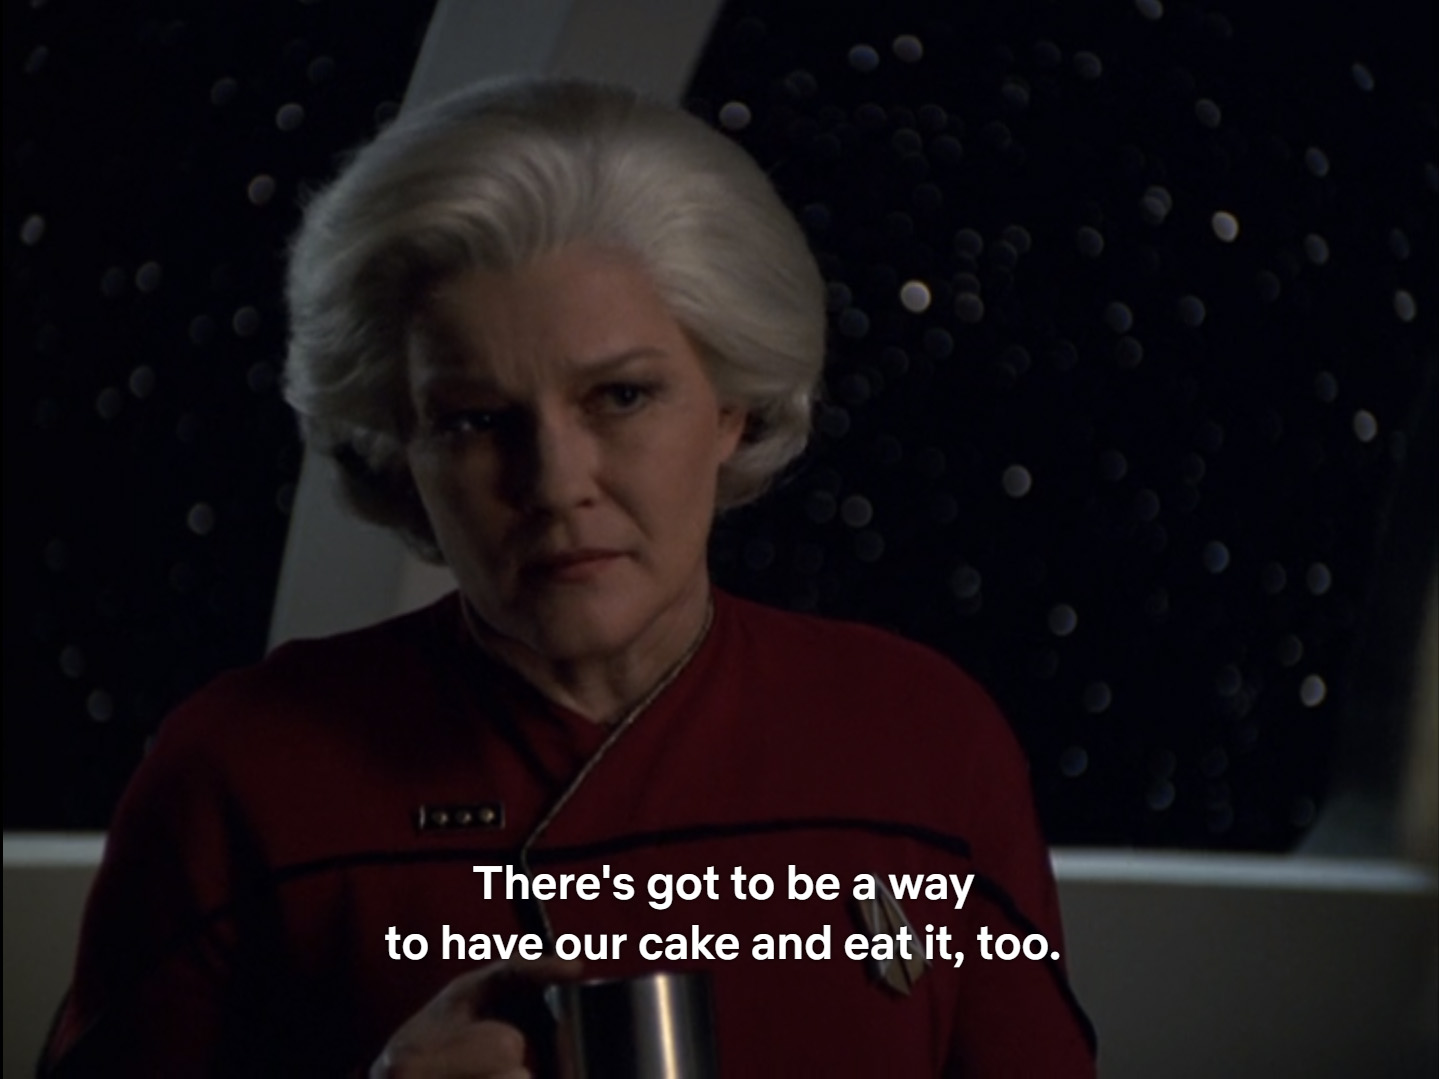 Star Trek: VOY - have our cake and eat it too